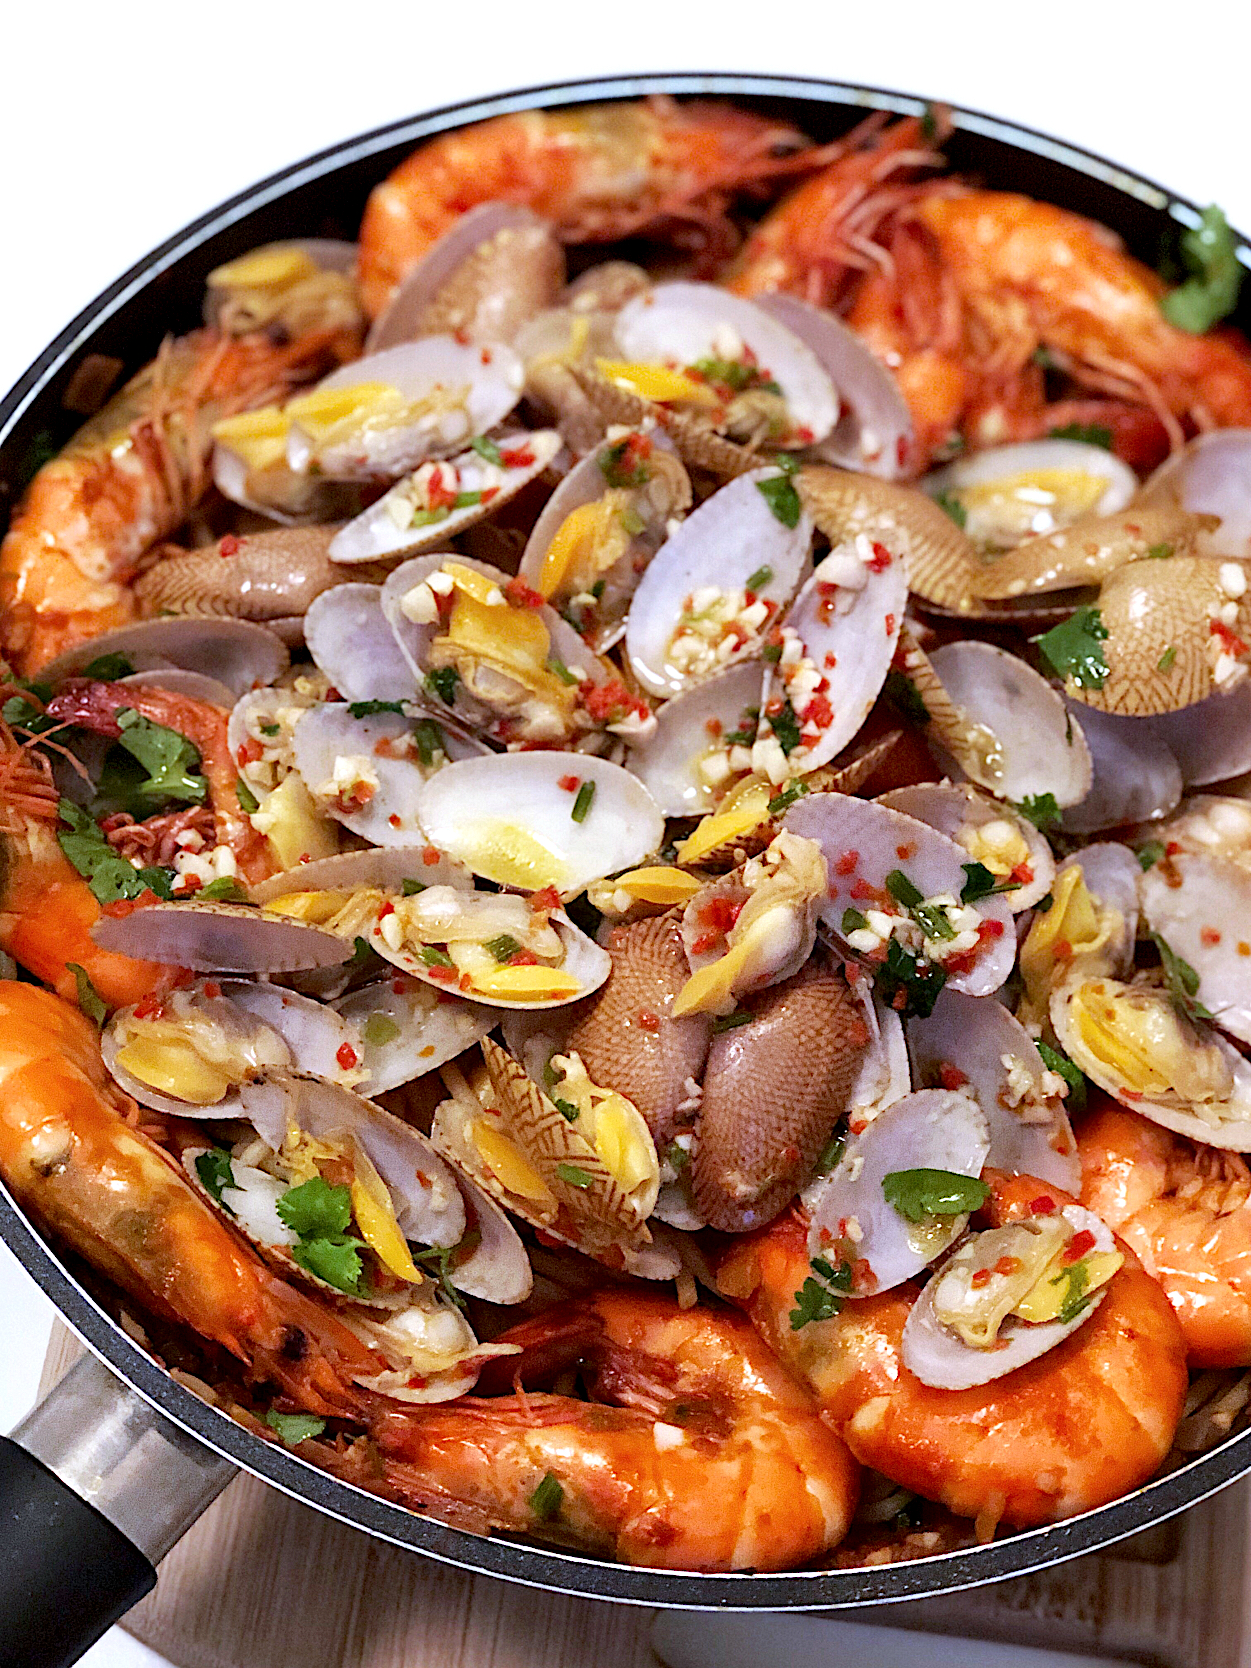 Seafood marinara with clams and prawns